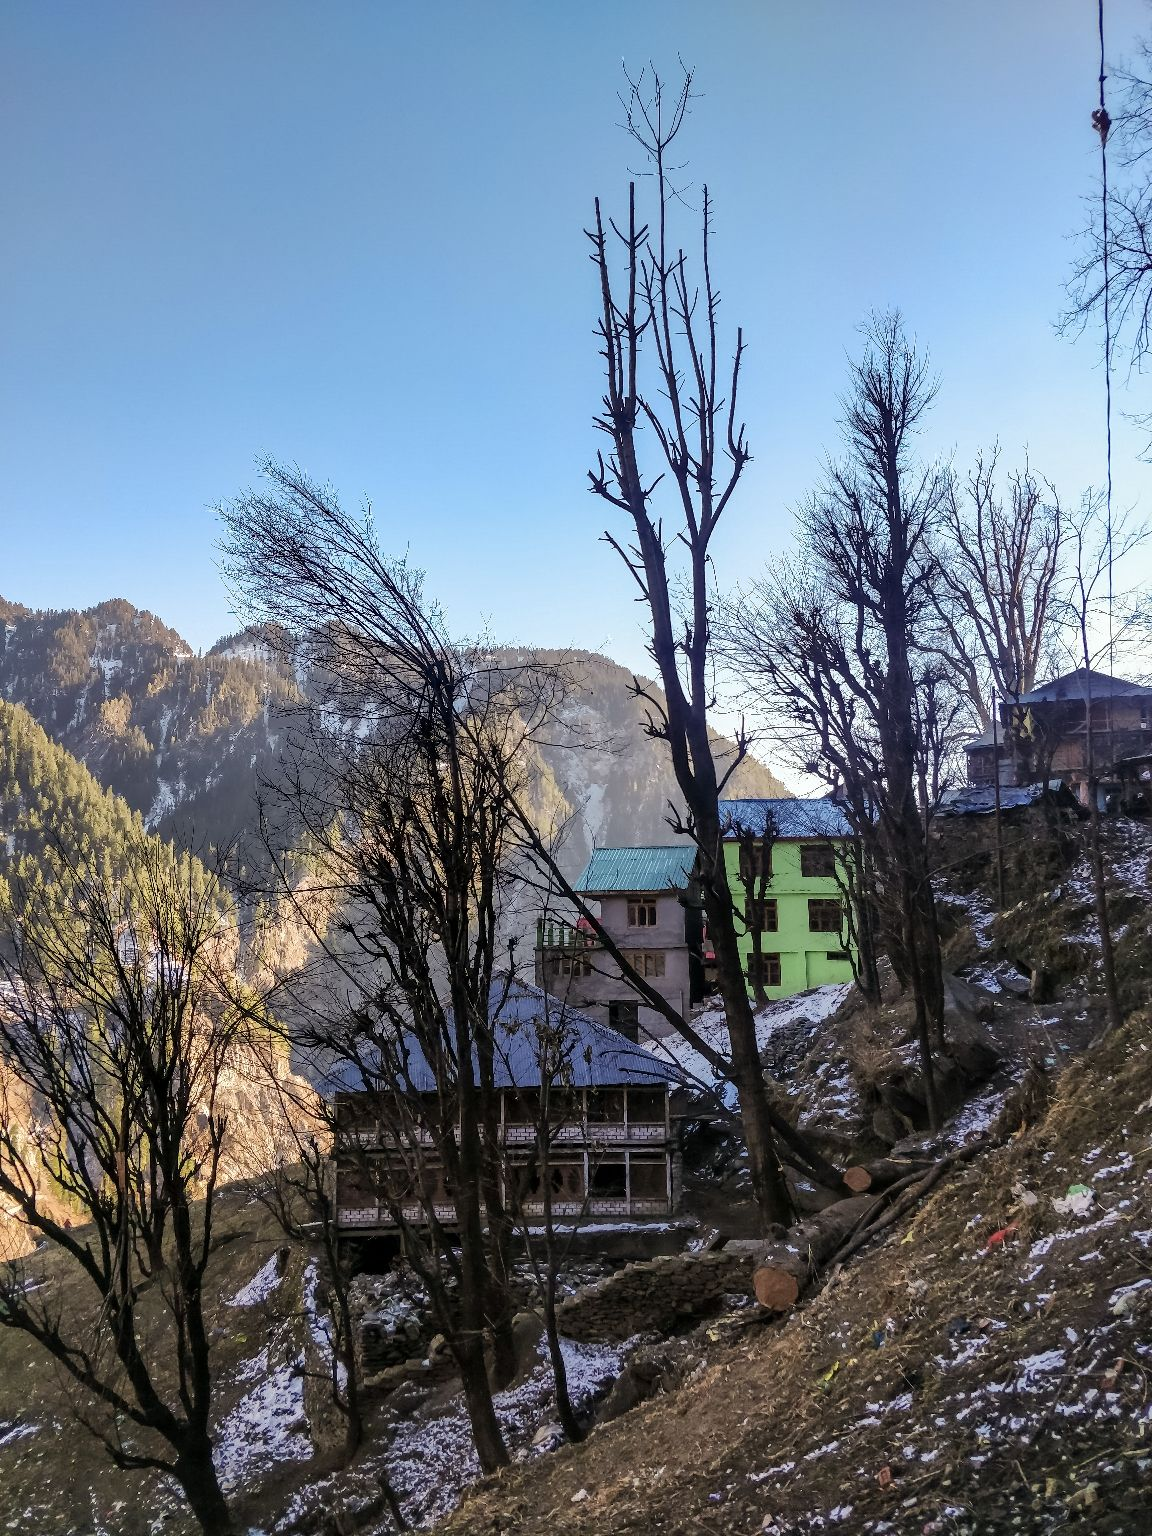 Photo of Malana By Vishal Khomane